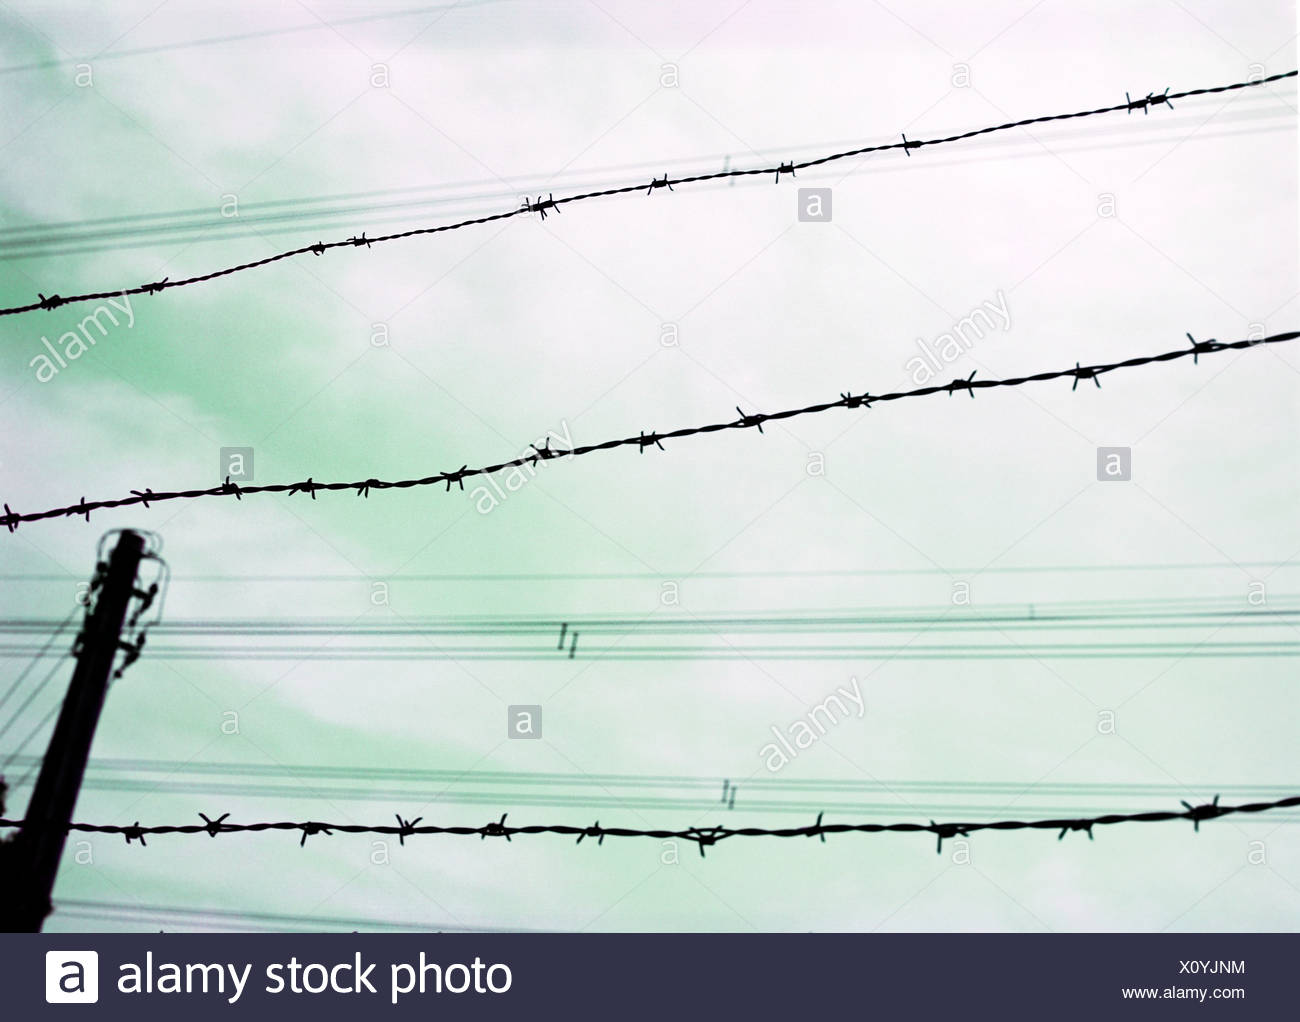 Barbed Wire Fence, close-up Stock Photo: 275973312 - Alamy